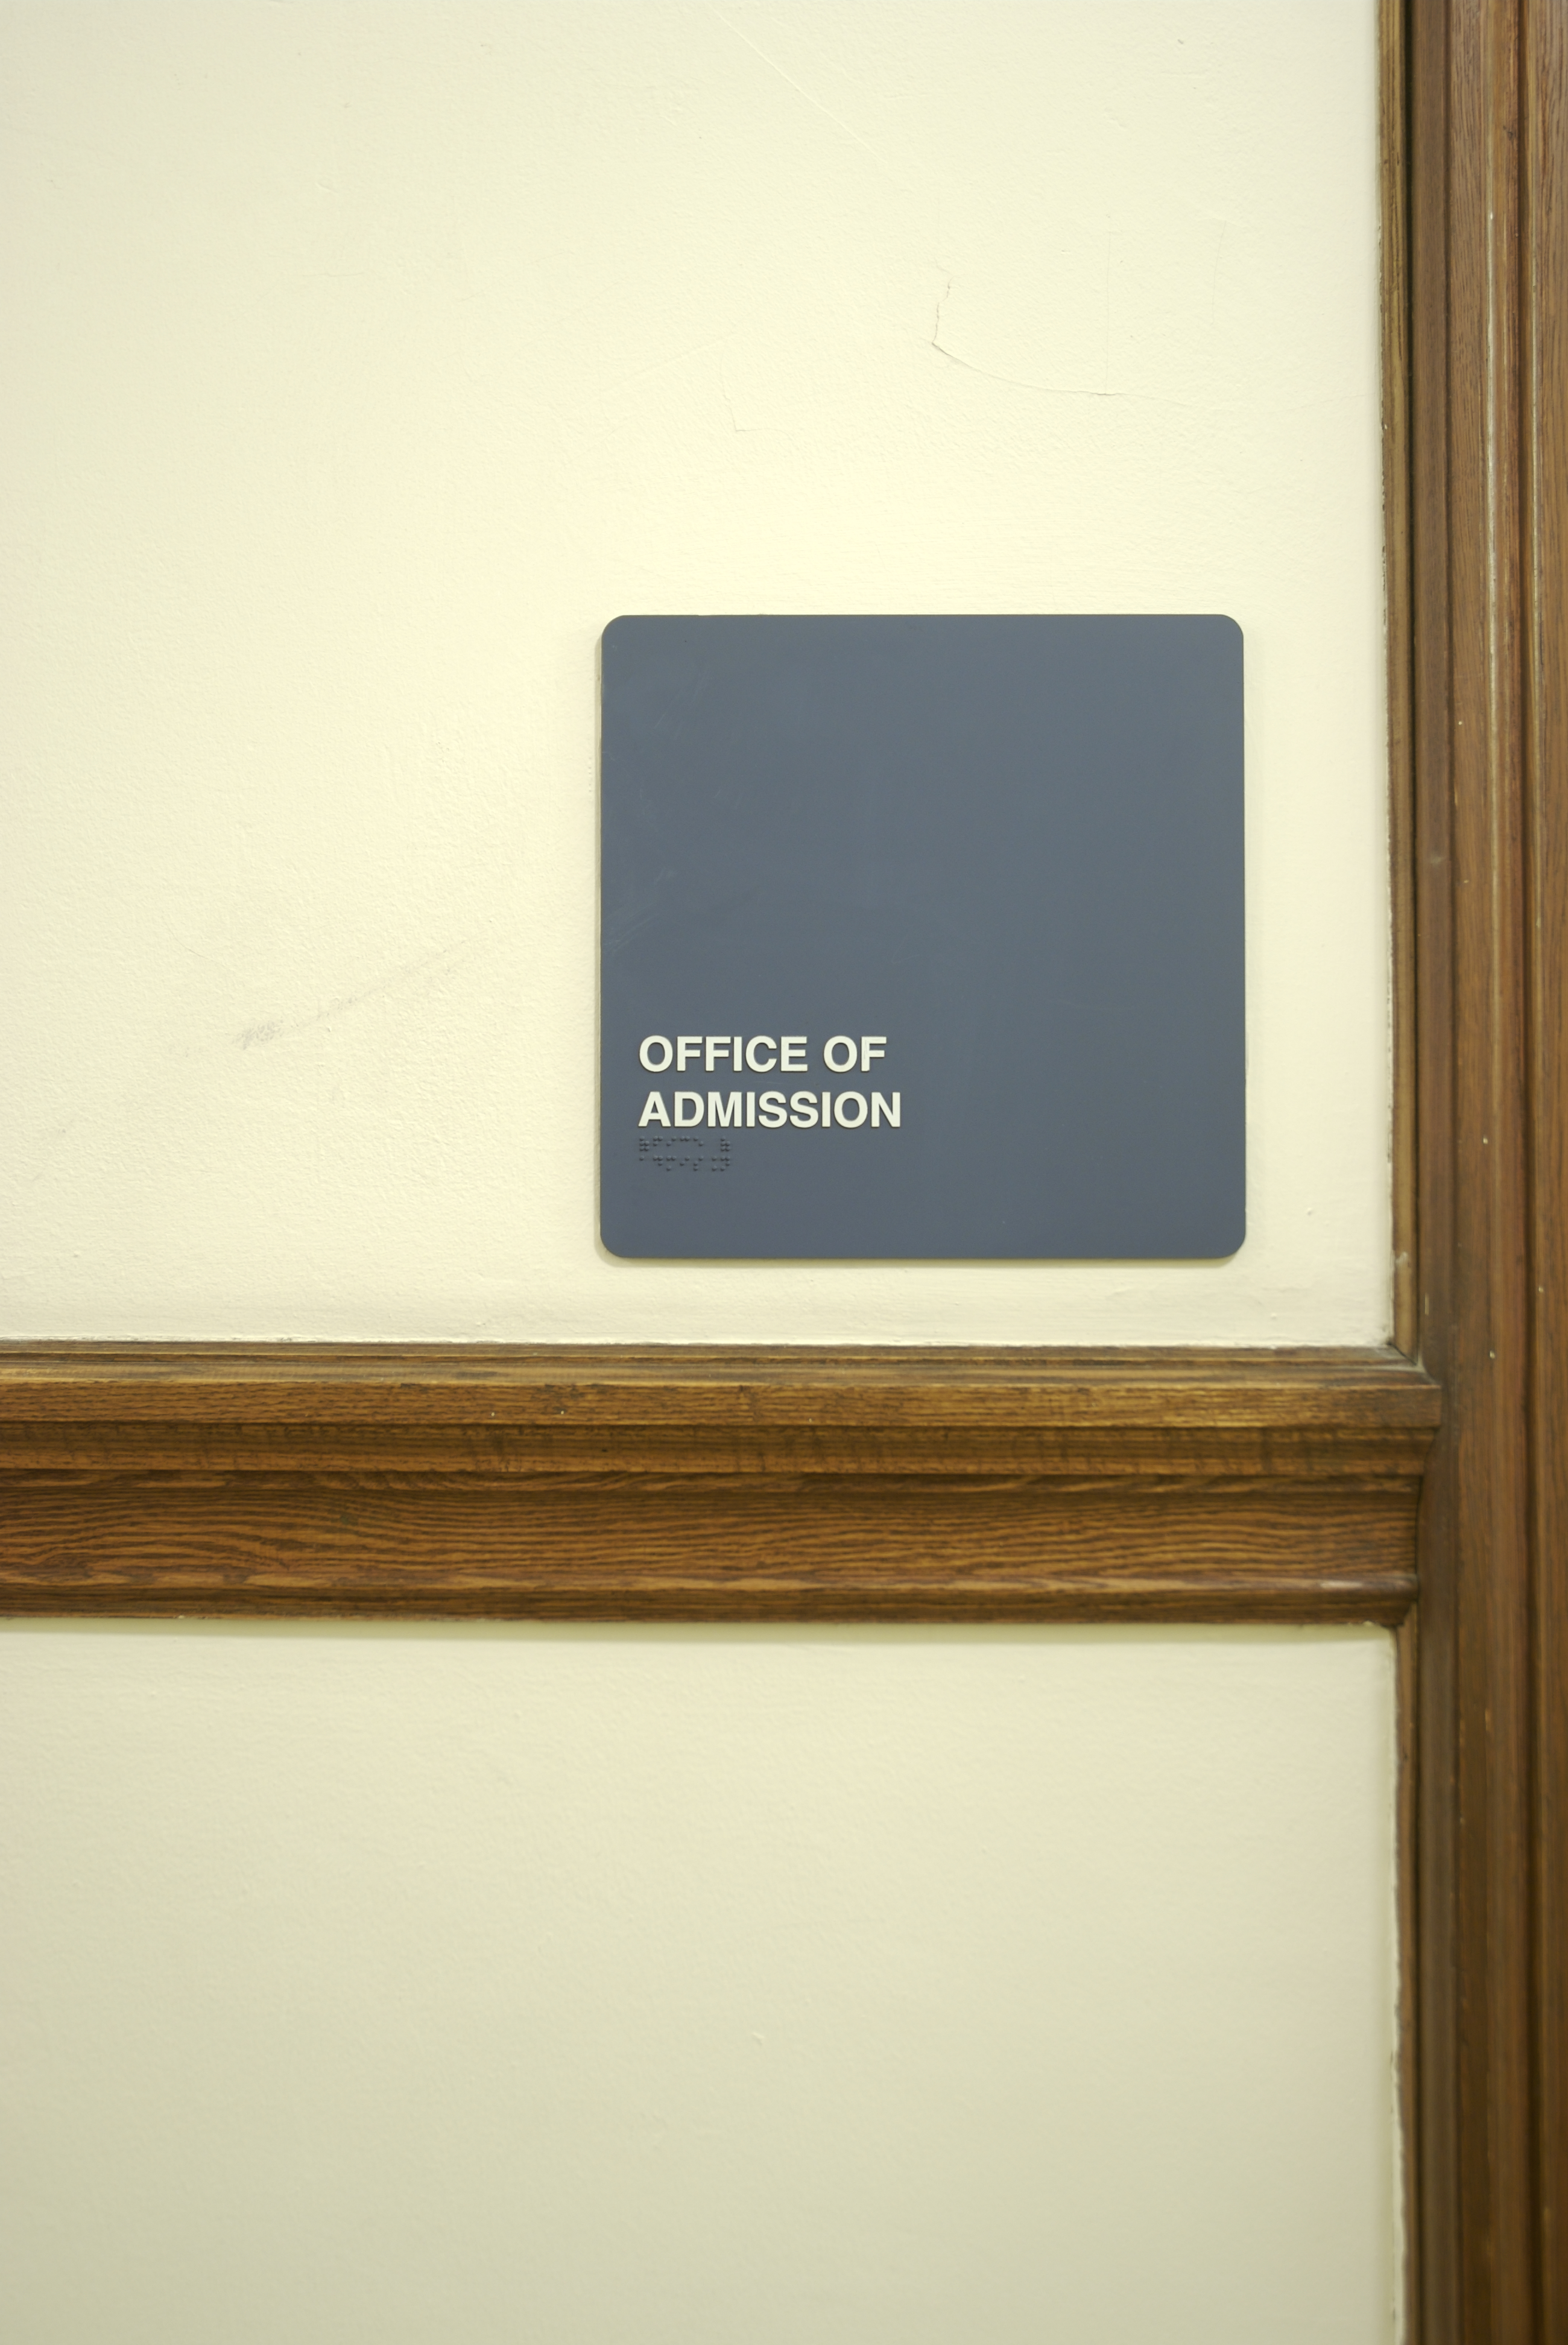 admission essay peterson s blog office of admission sign on wall